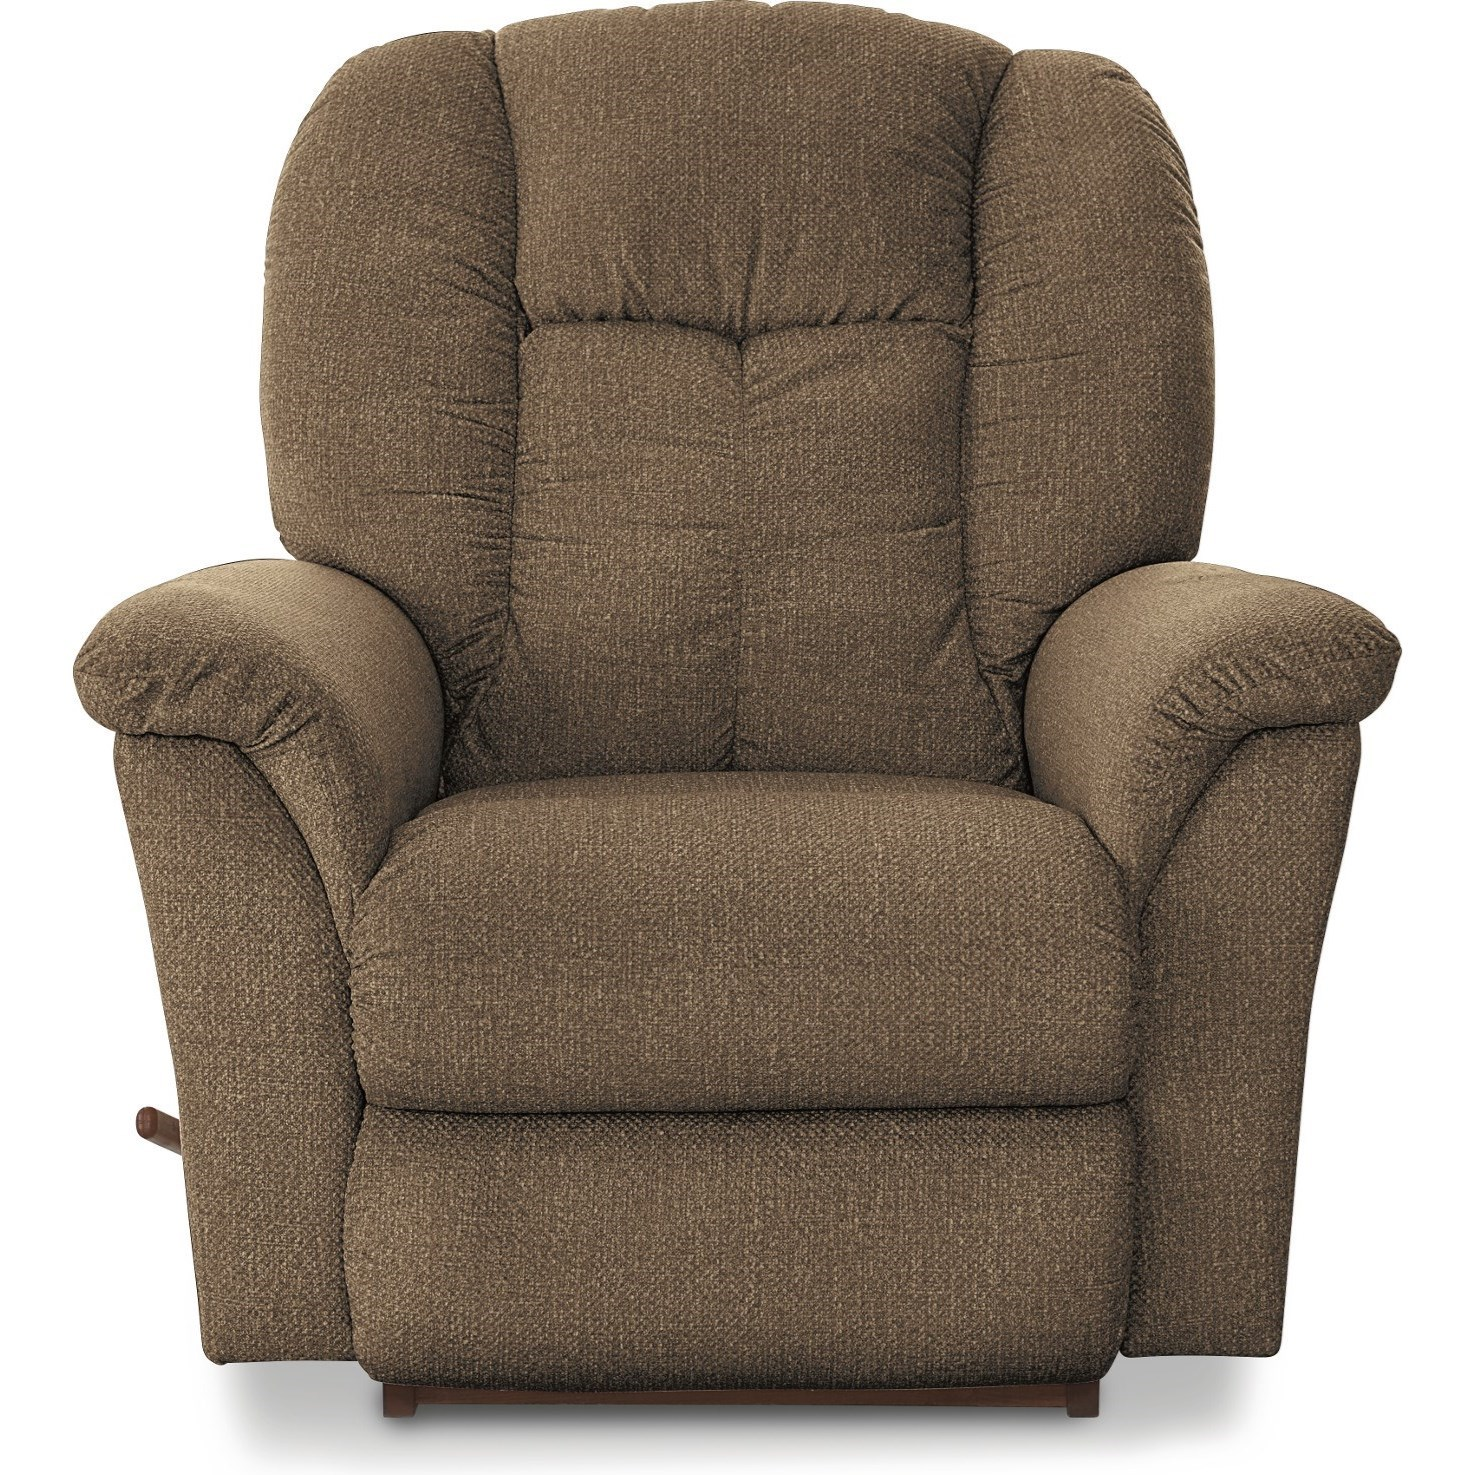 Recliners Jasper Wall Recliner by La-Z-Boy at Jordan's Home Furnishings